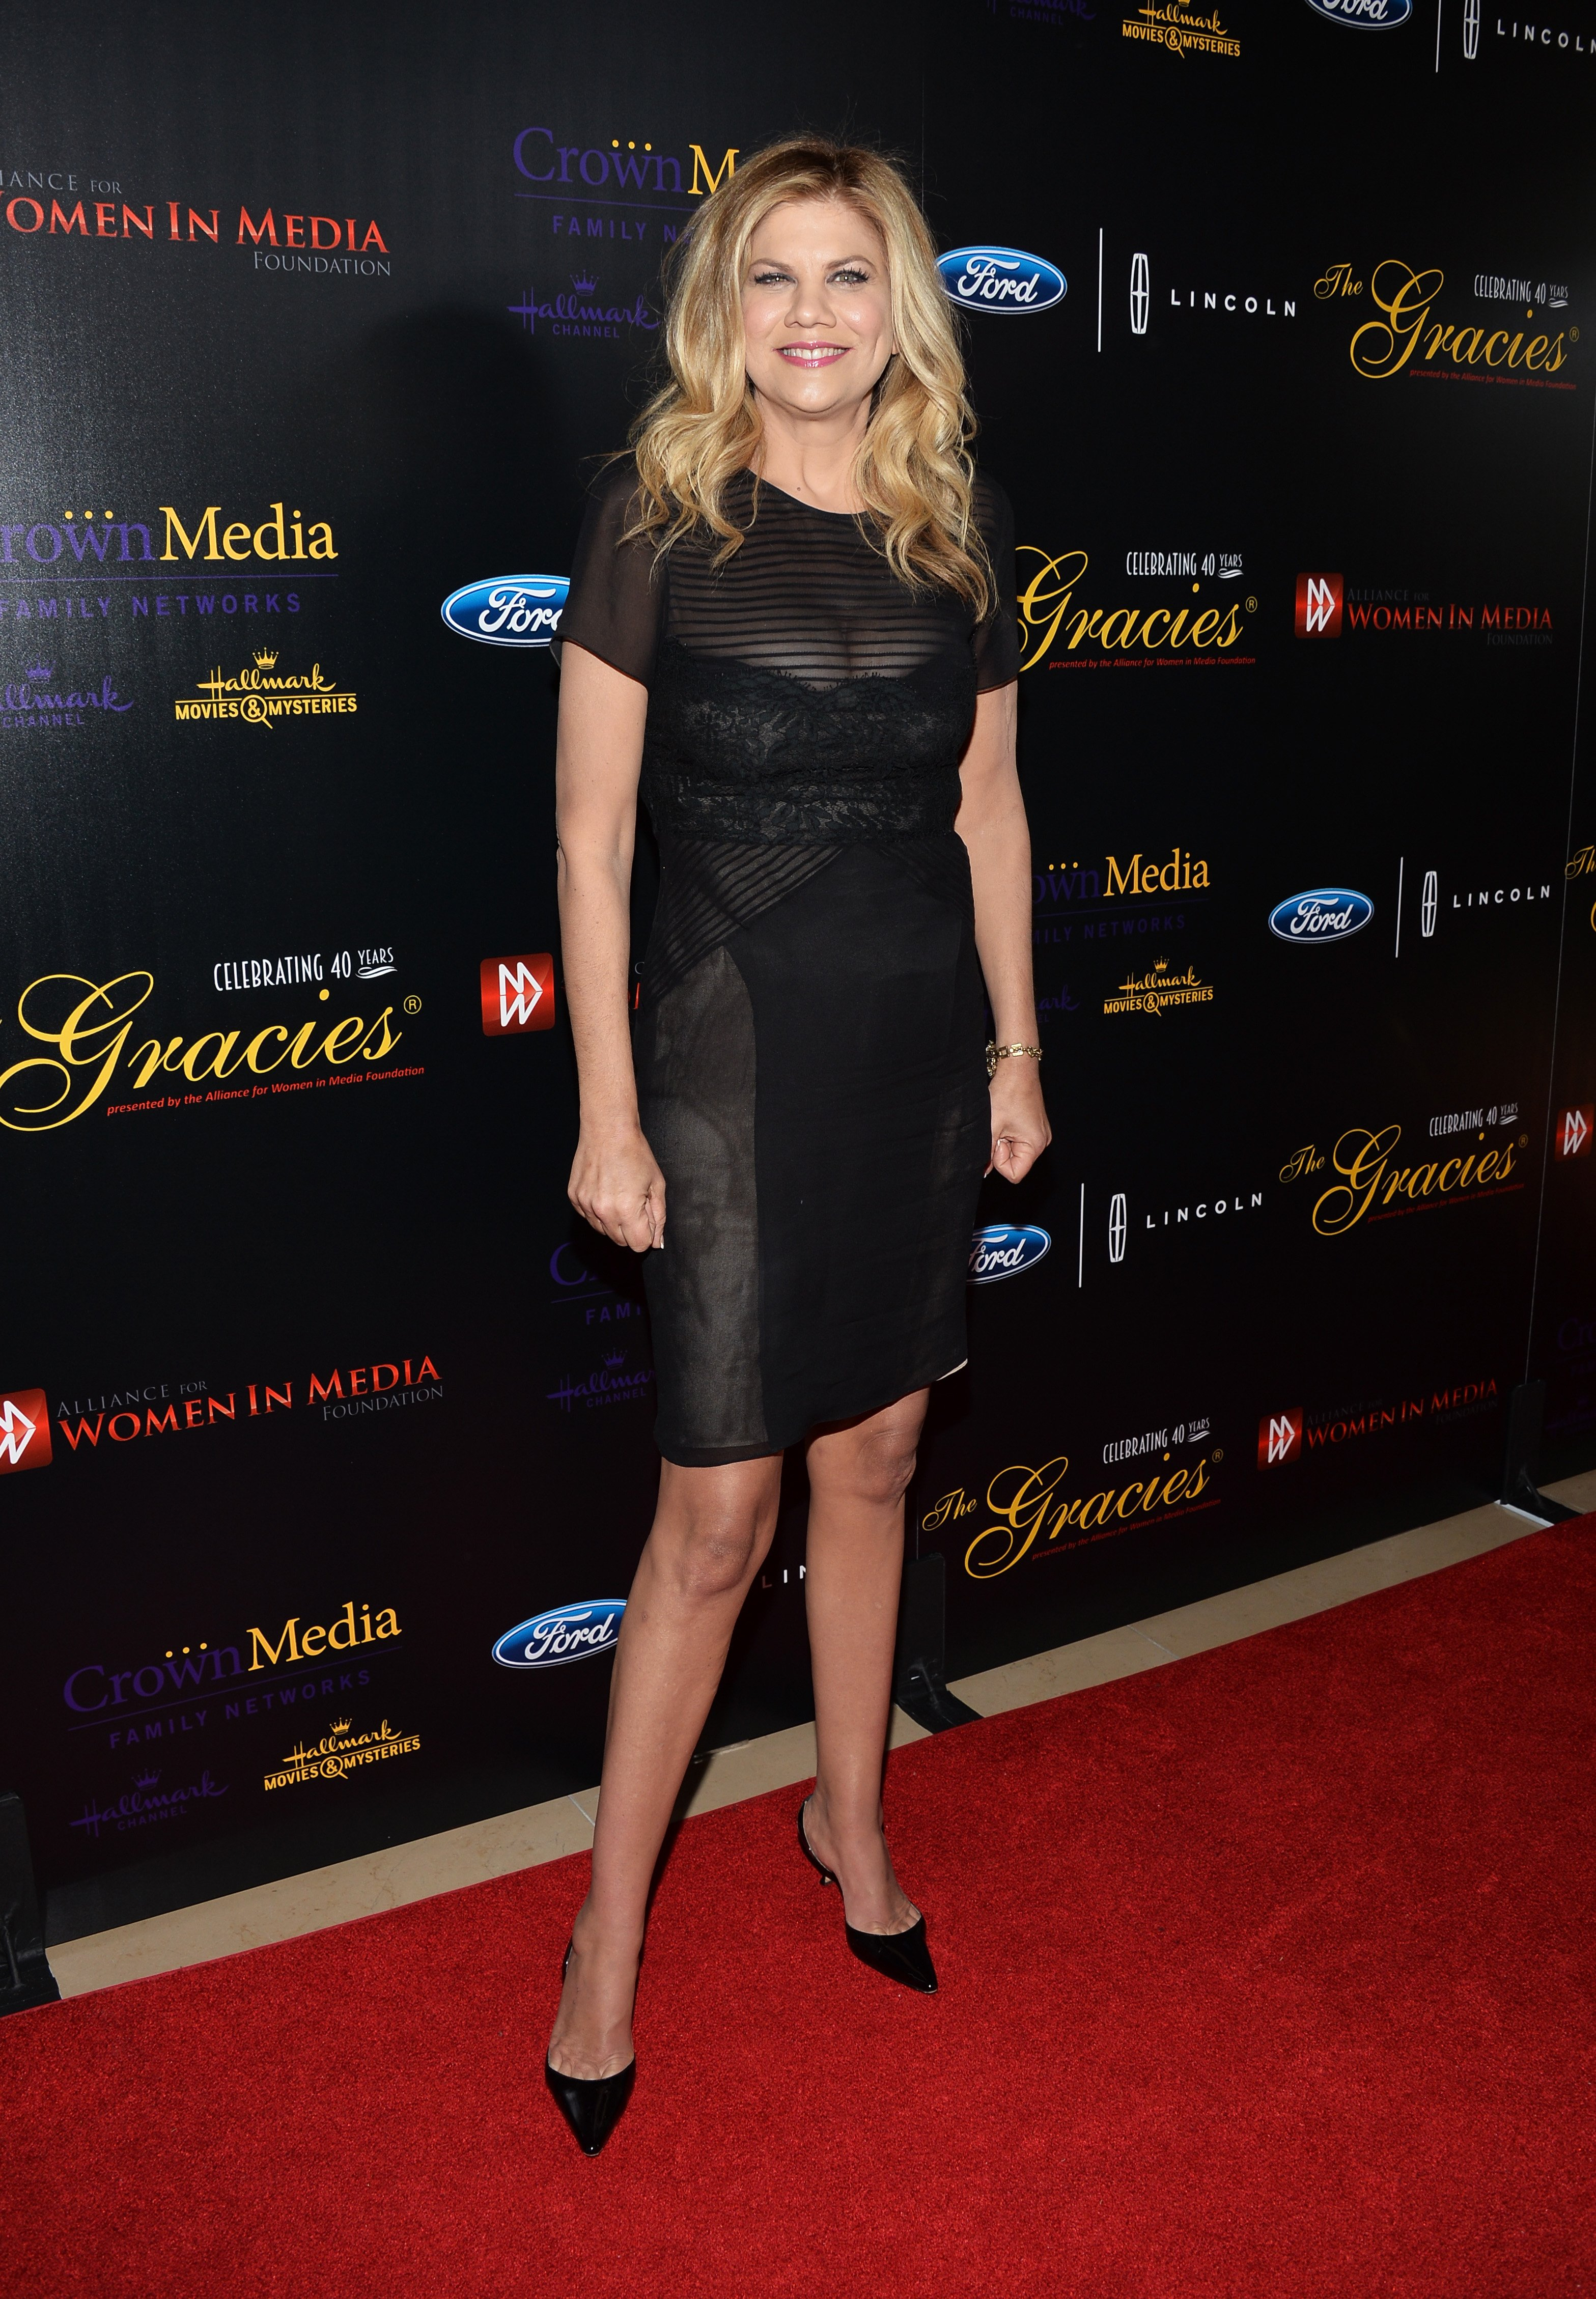 Kristen Johnston arrives at the 40th Anniversary Gracies Awards on May 19, 2015, in Beverly Hills, California.   Source: Getty Images.